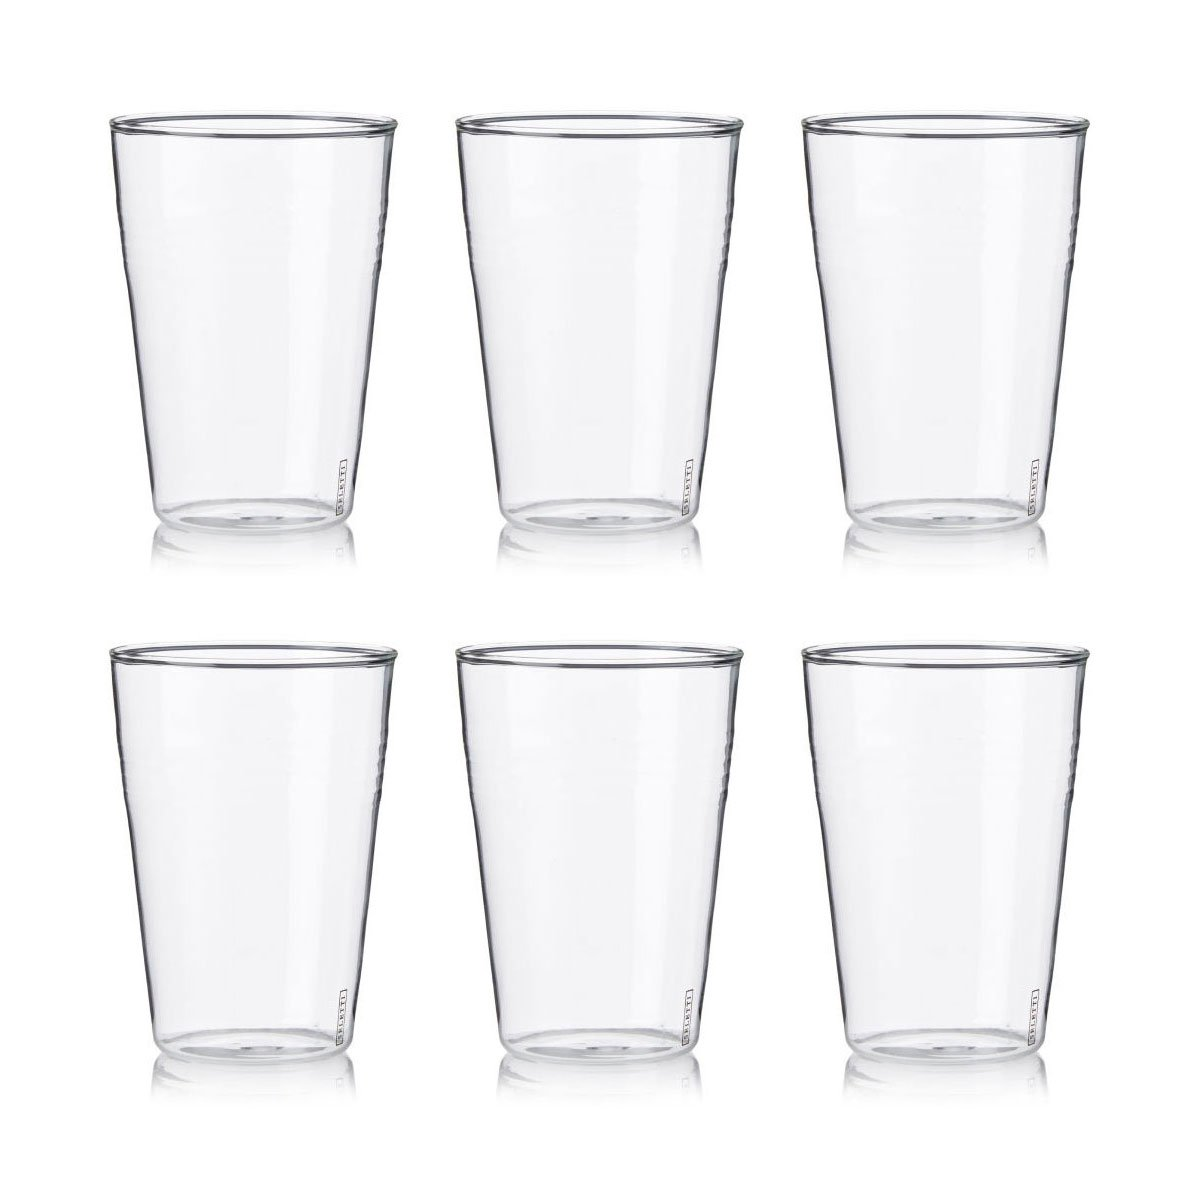 Estetico Quotidiano Beer and Cocktail Glass [Set of 6]